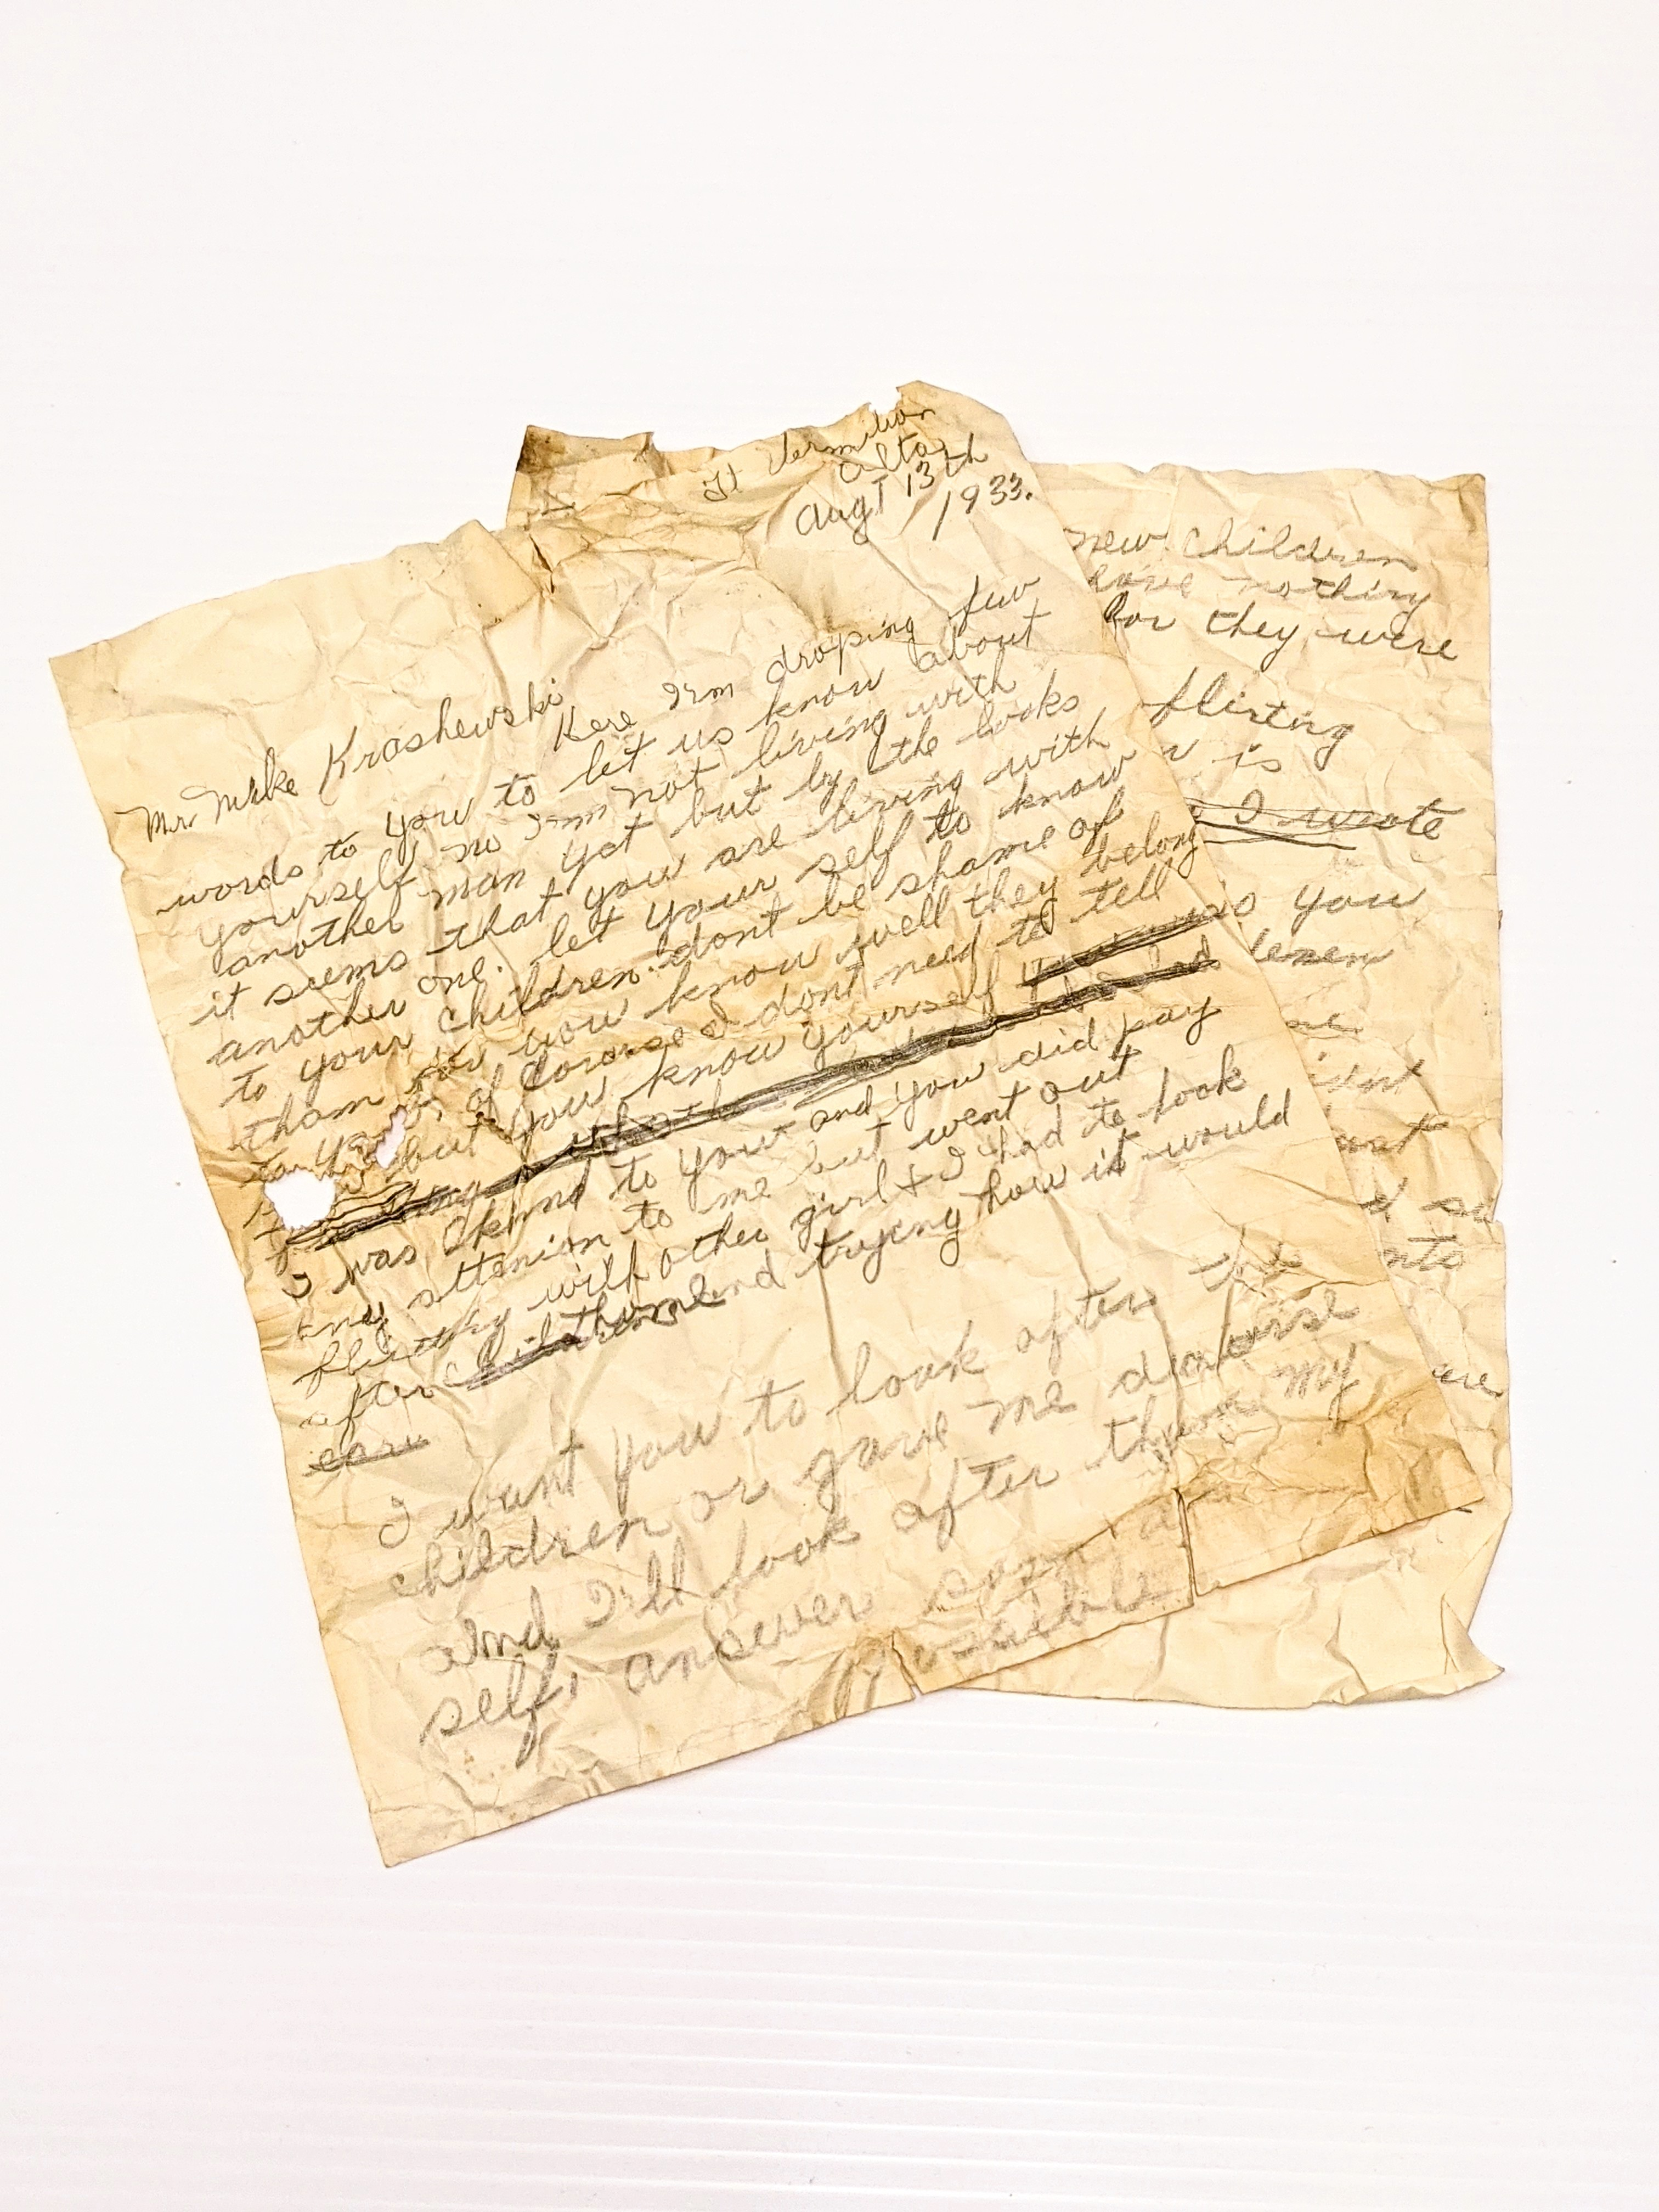 """Dated Aug 13, 1933 this letter tells of a spurned lover. The contents are addressed to a """"Mr. Mike Krasheuski"""" whom the writer notes as being the father of her children. The writer notes """"I herd you said im living with another man but don't (i'm not?) like you to flirt for I need not tell you just think it over yourself how easy you were taking ladies to the restaurant buying nice things to eat + drink + I was starving at home"""". The letter is started three different times giving the impression the writer struggled to accurately convey their thoughts and feelings. It was found in a wall of the Old Bay House During Restorations - likely scrunched up and pushed through a knot hole of the wall for safe keeping.  12/04/2021 2008.32.03 / Friends of the Old Bay House Society"""